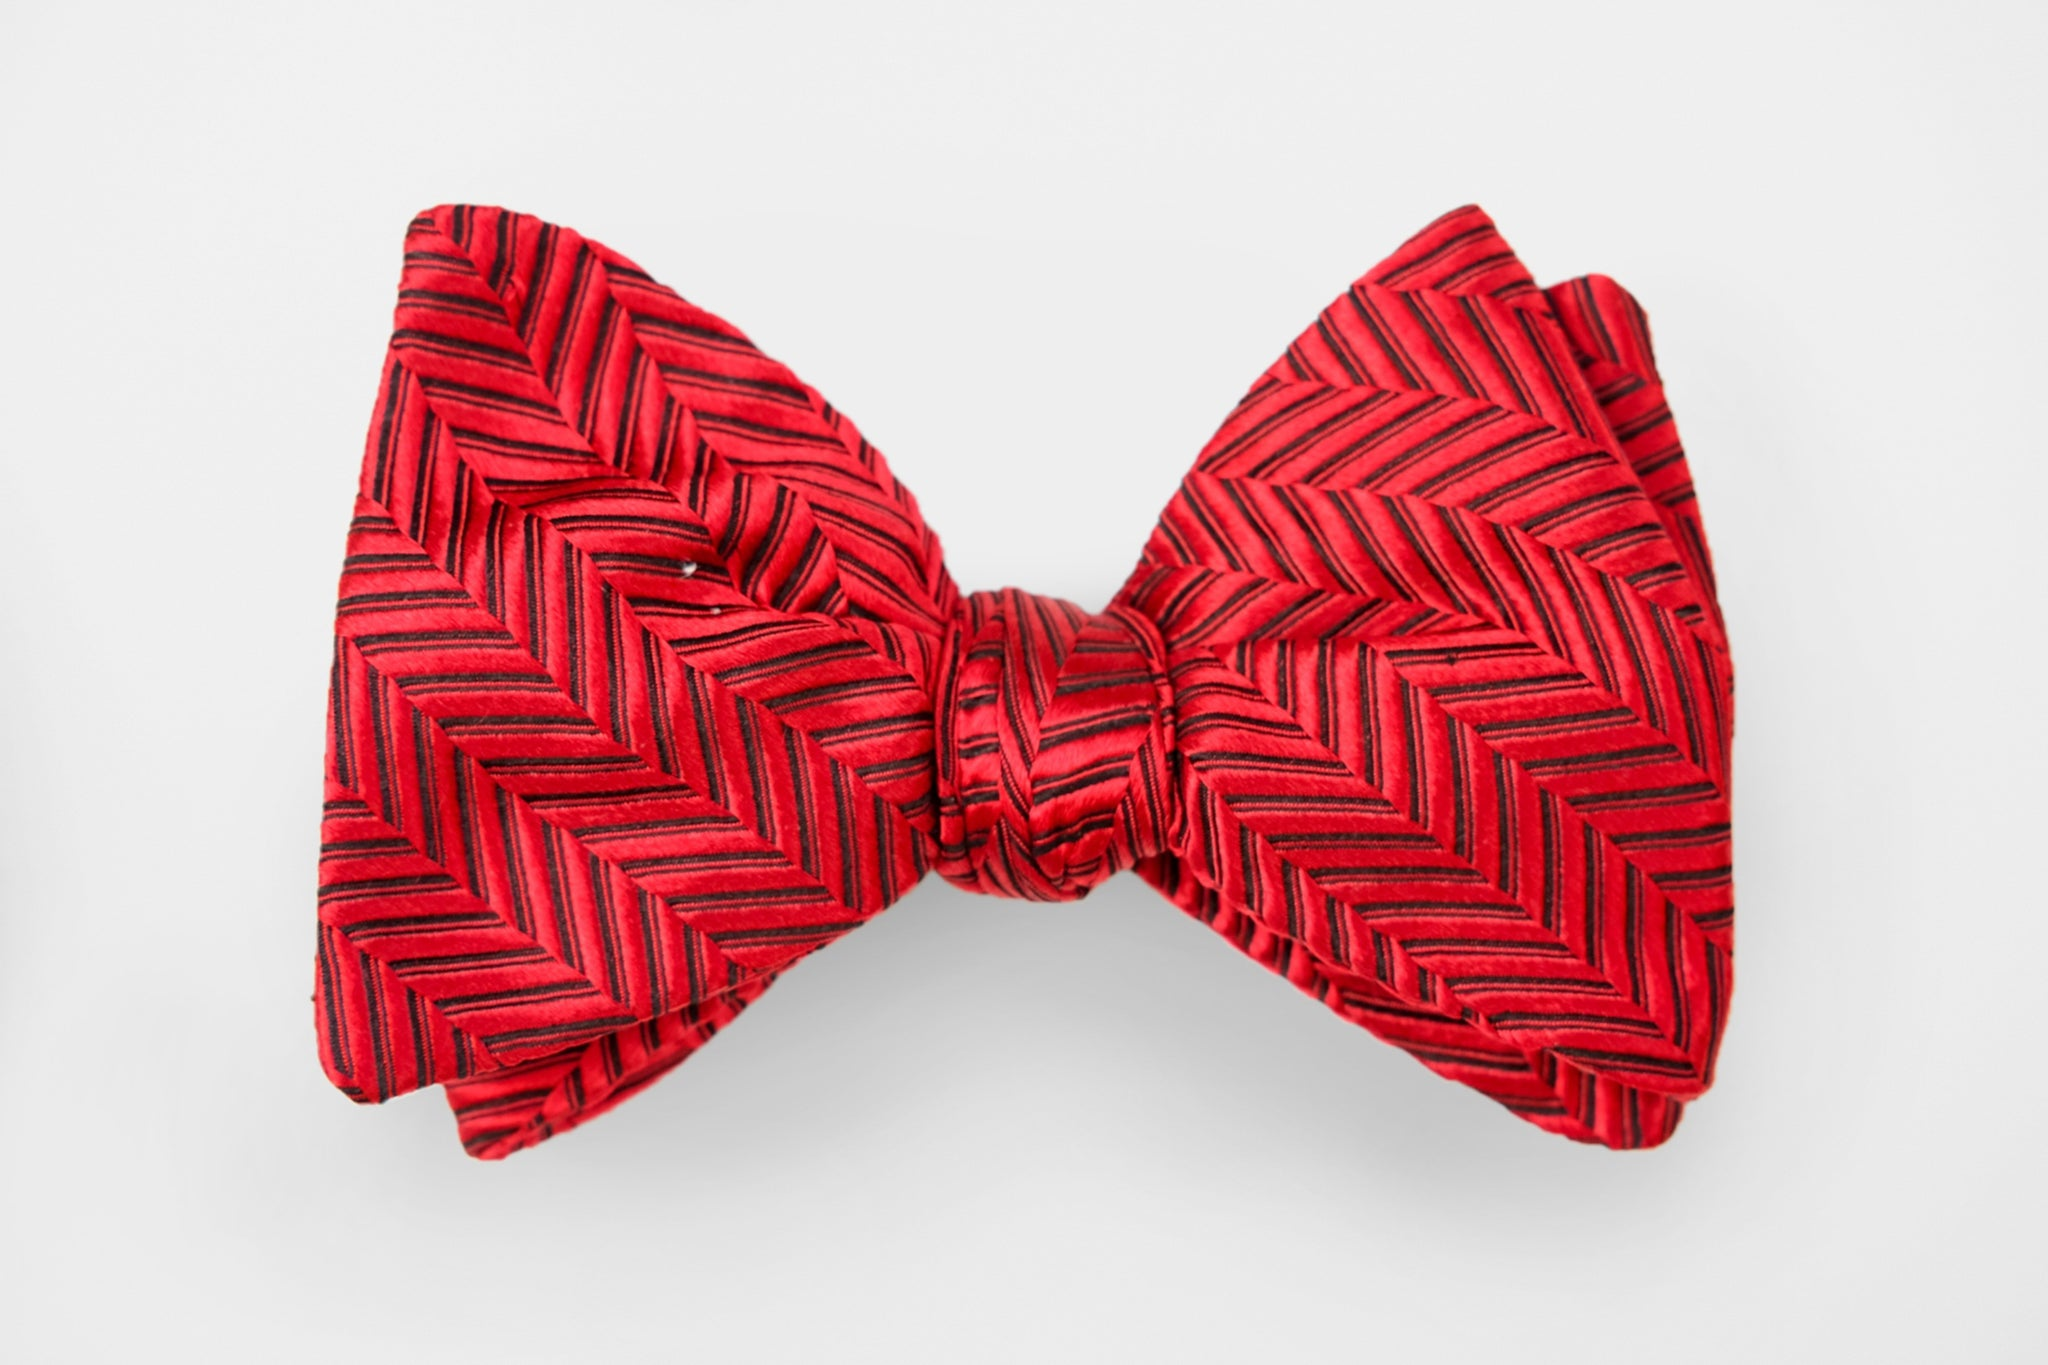 Red/Black Tonal Herringbone Texture